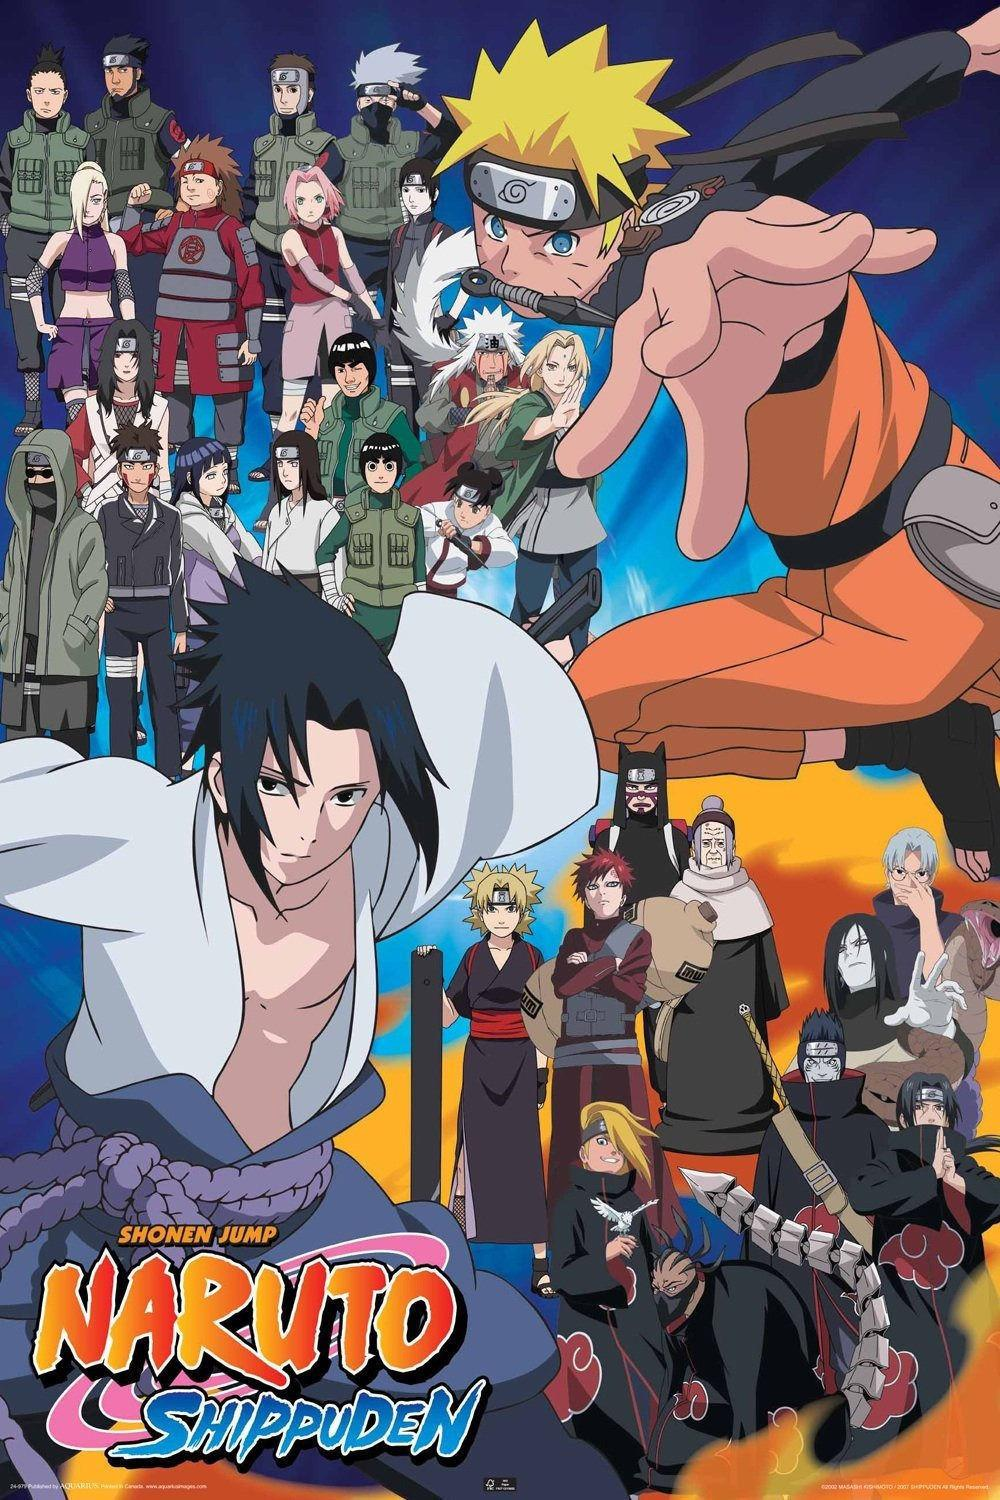 naruto cast tv anime wall poster posters for living room wall wall poster home